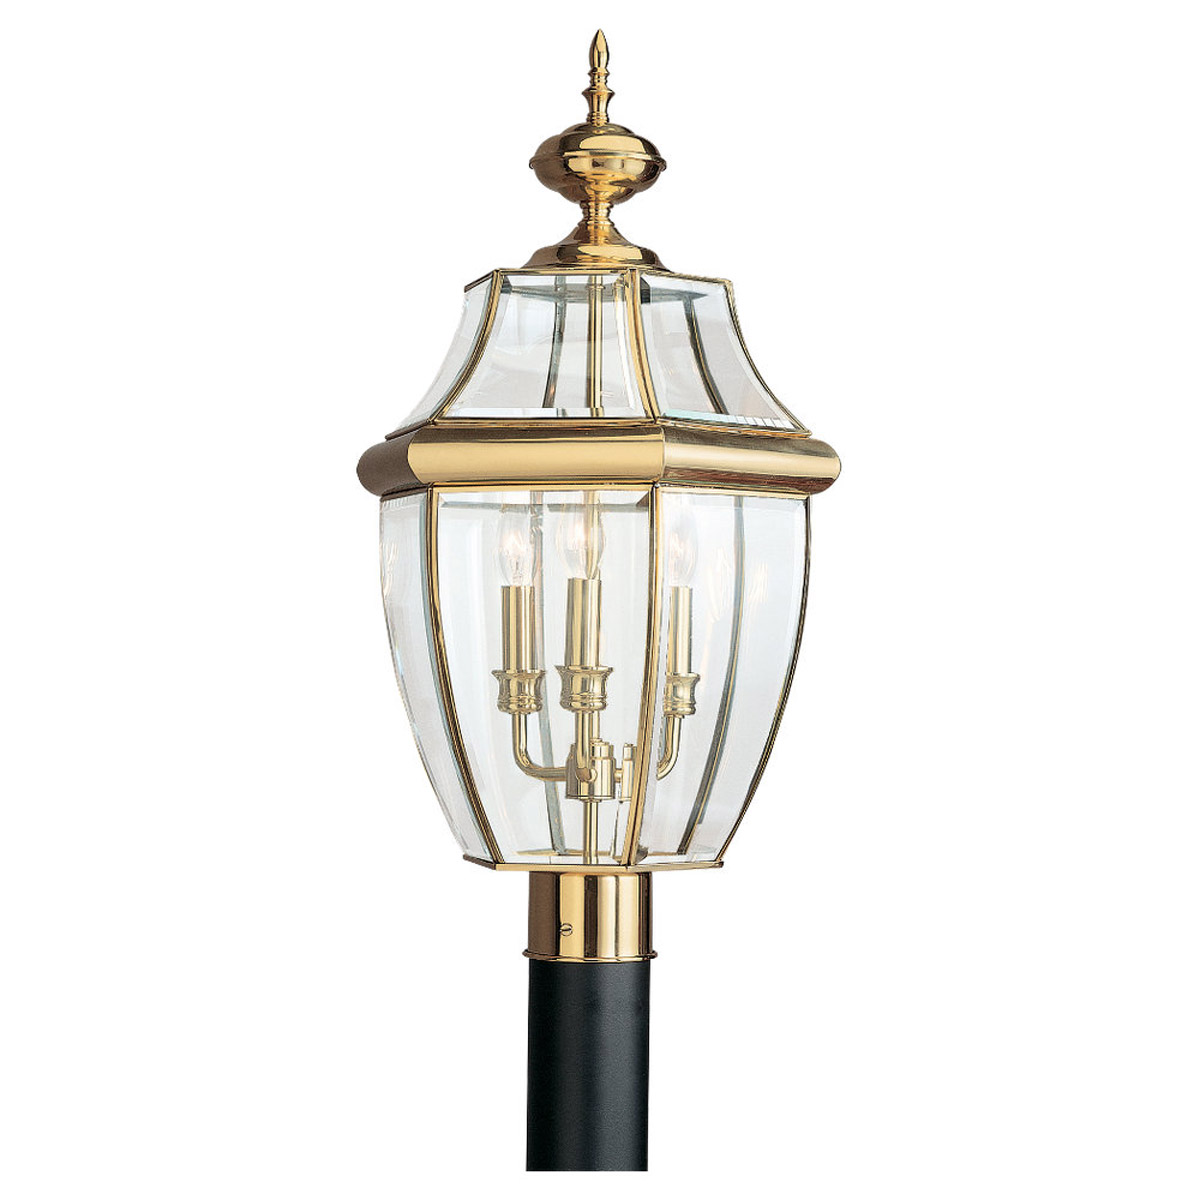 Sea Gull 8239-02 Lancaster 3 Light 24 inch Polished Brass Outdoor Post Lantern photo